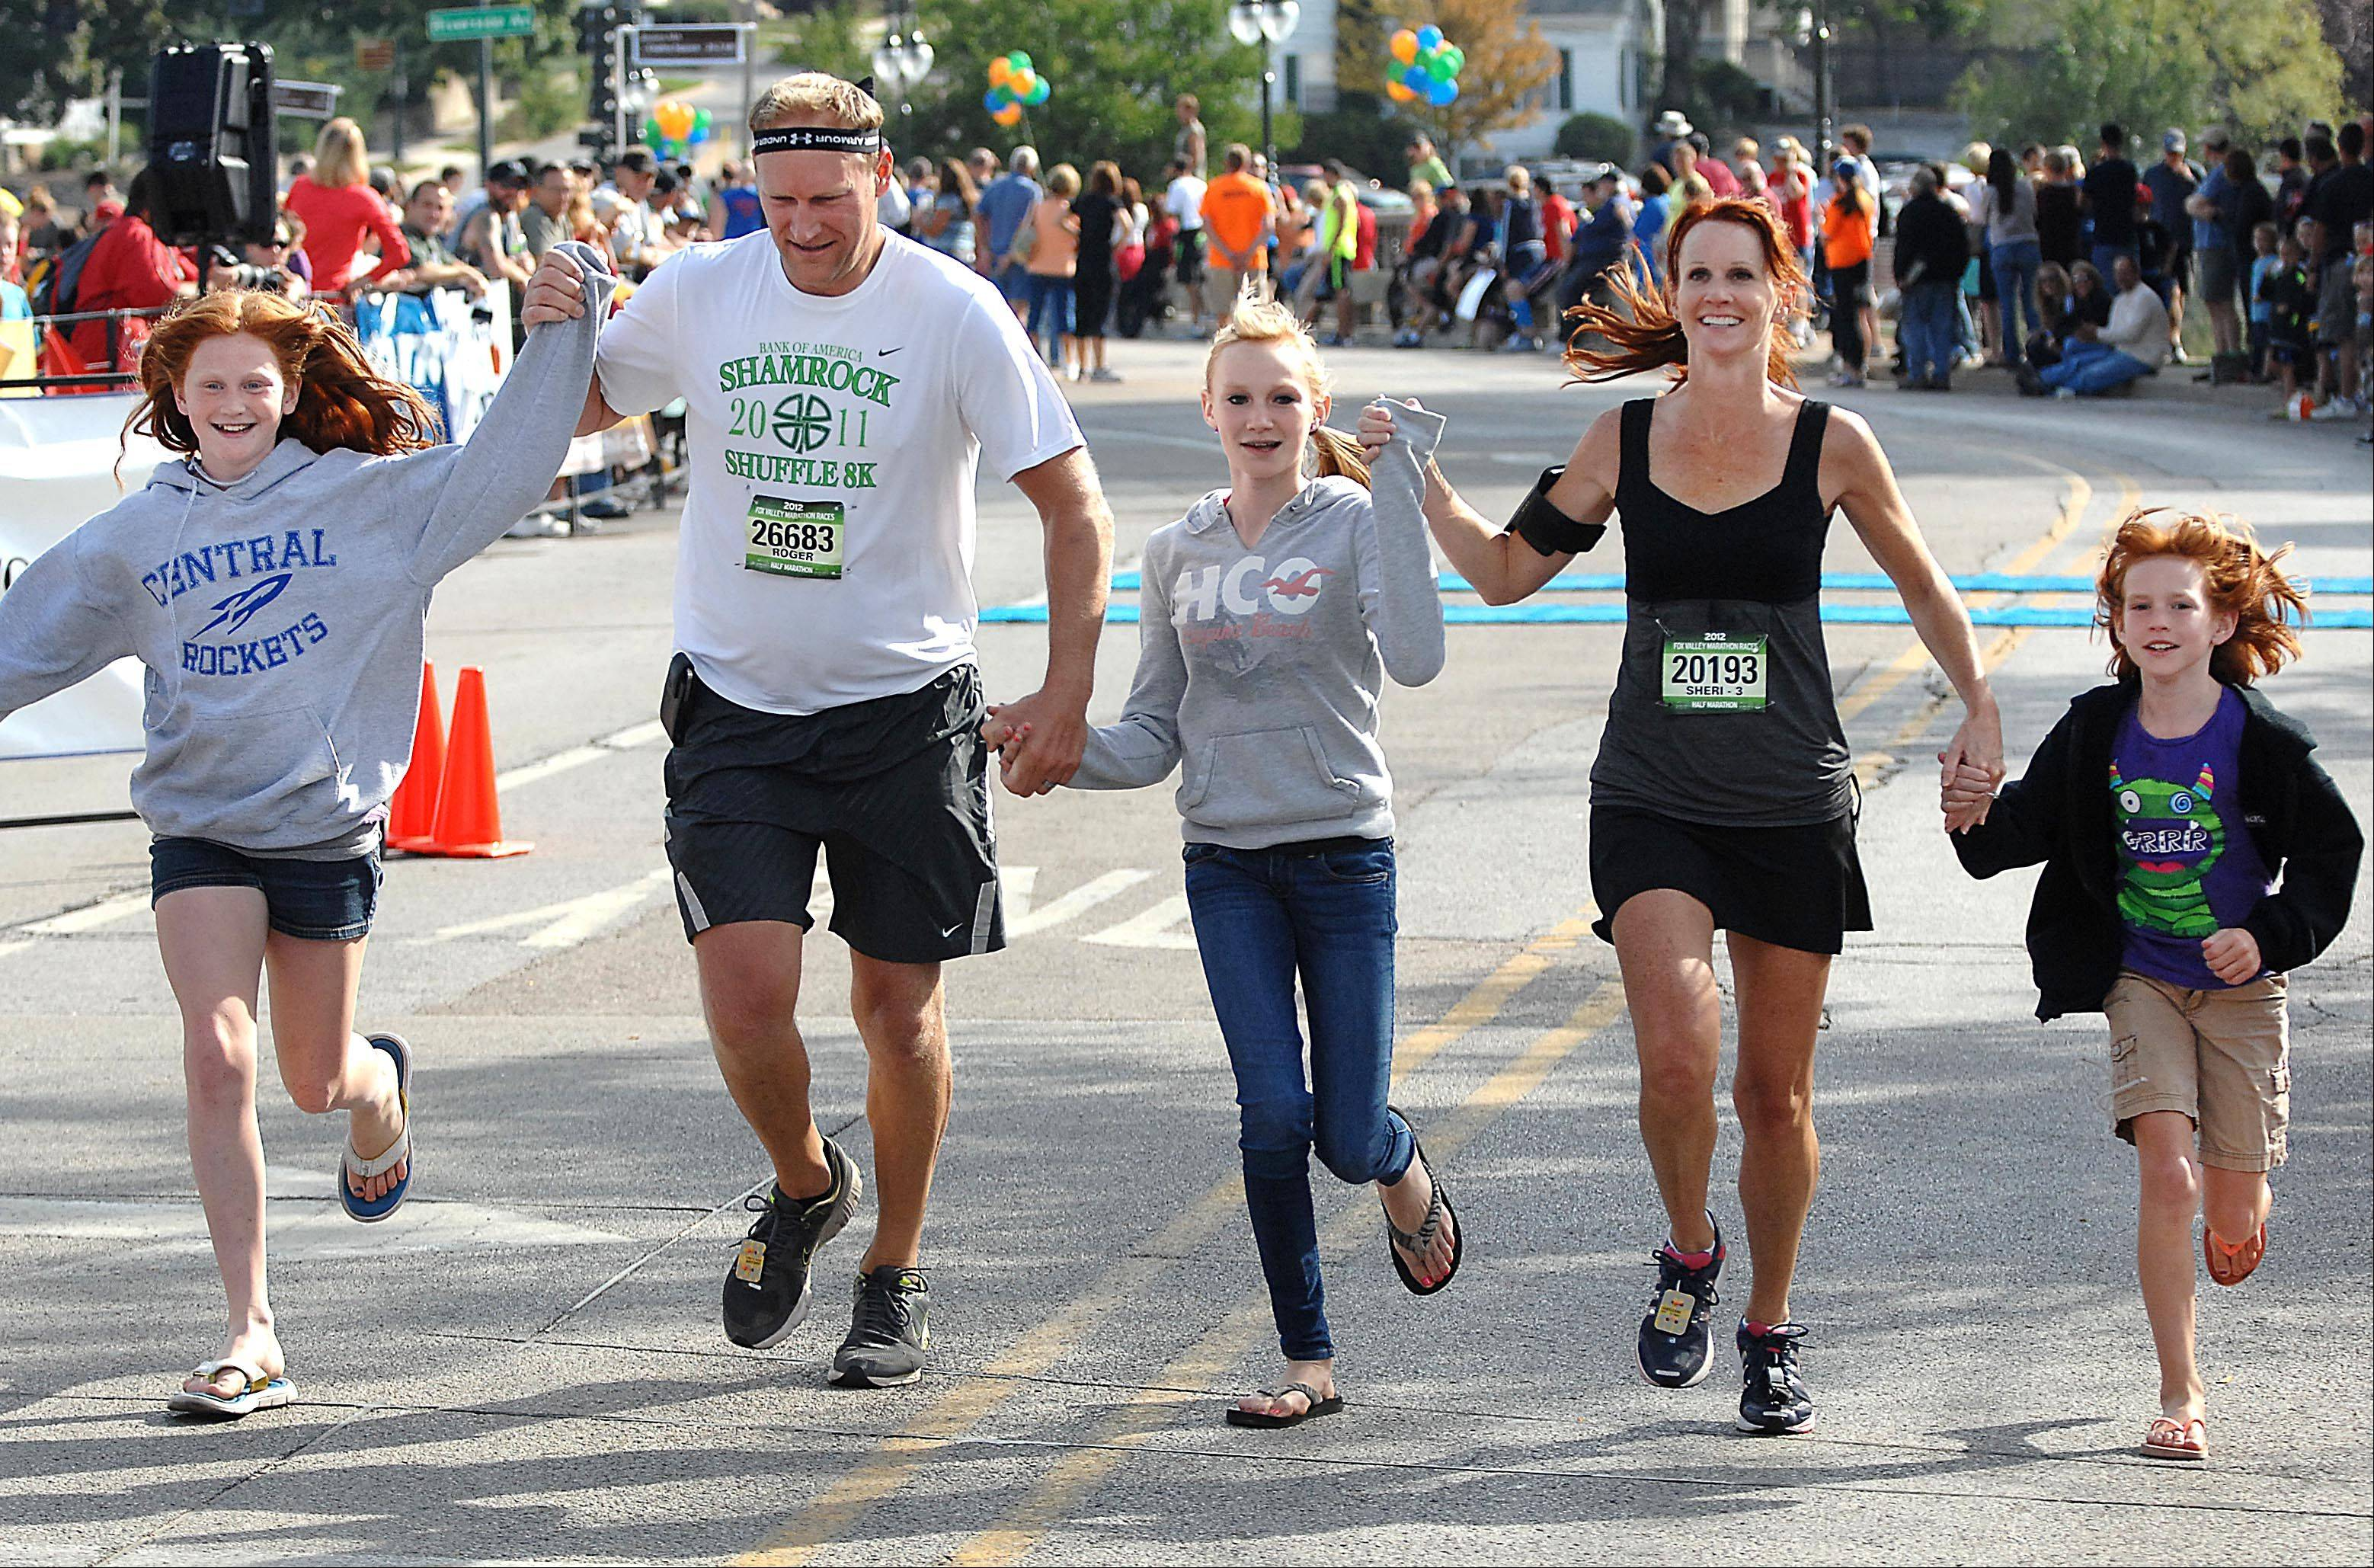 Roger and Sheri Greenhagel of Elgin finish the Fox Valley Half Marathon with their children, Paige, Emily and Brin, joining them for the last few yards Sunday in St. Charles.